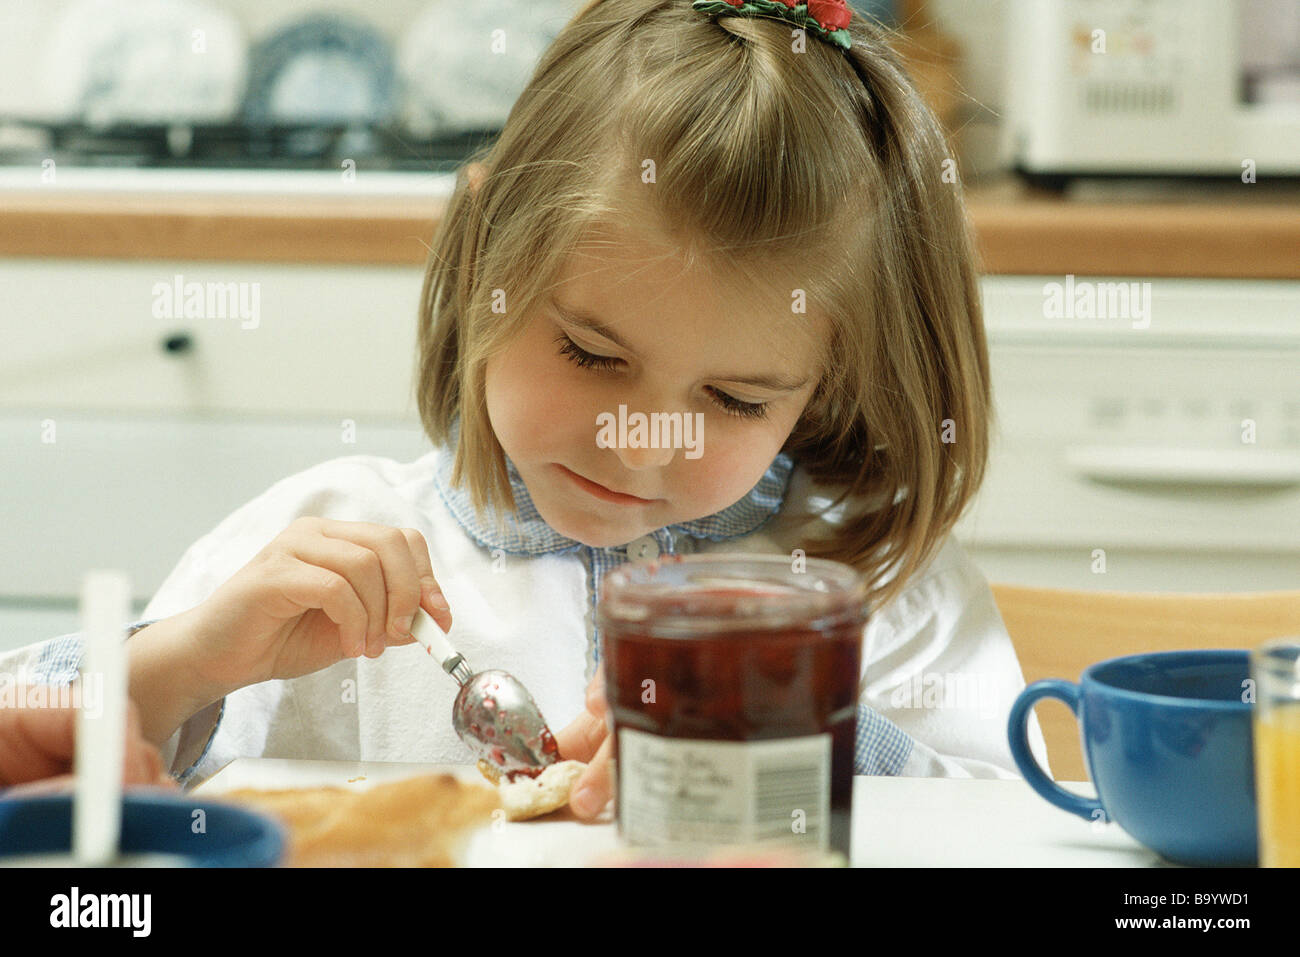 Girl putting jam on bread - Stock Image